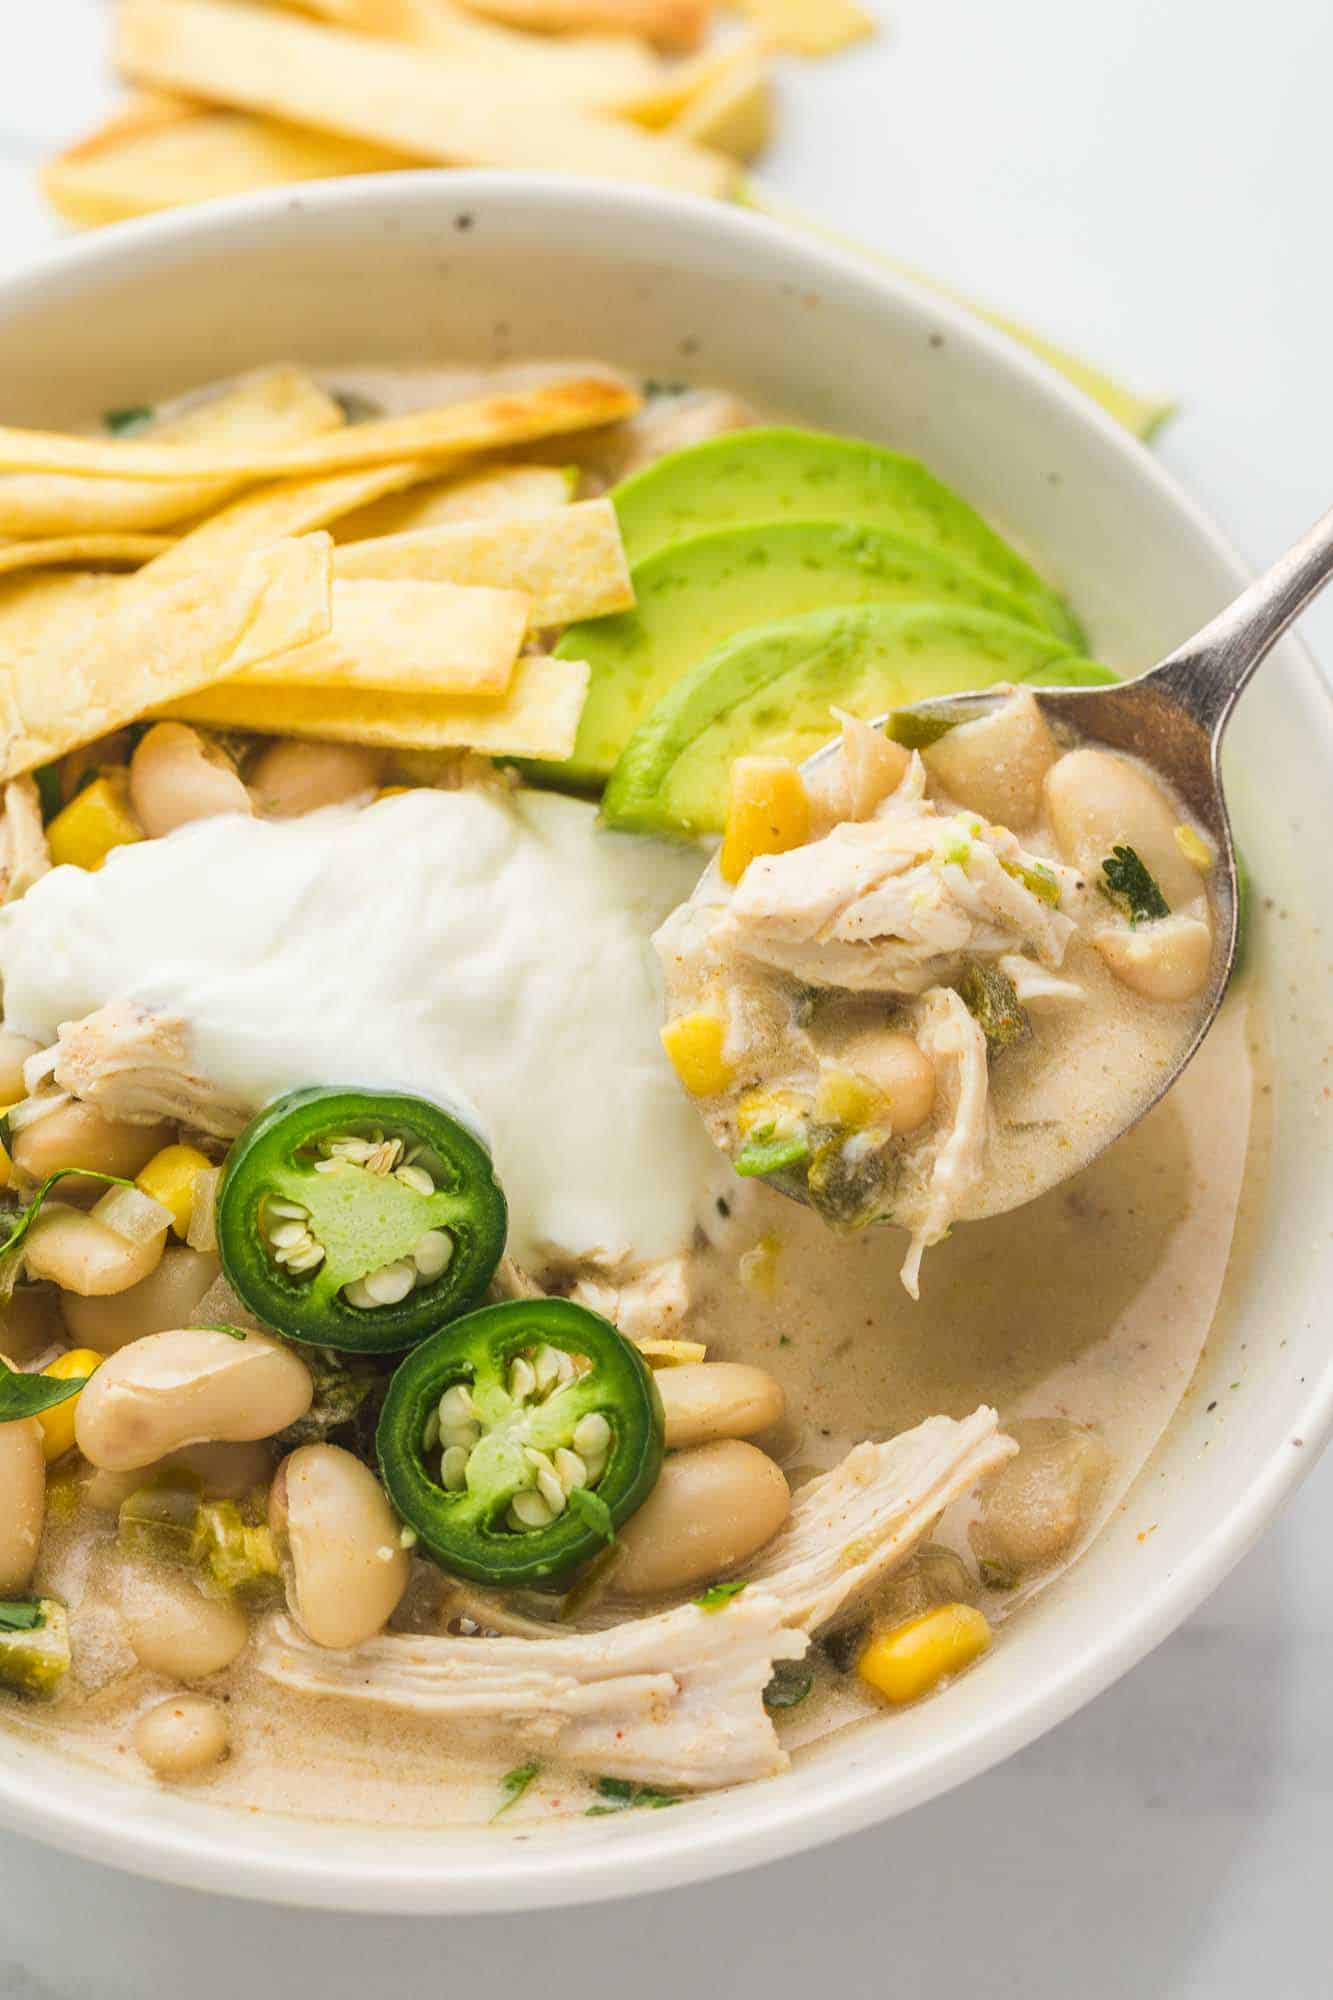 White chili in a white bowl and a spoon